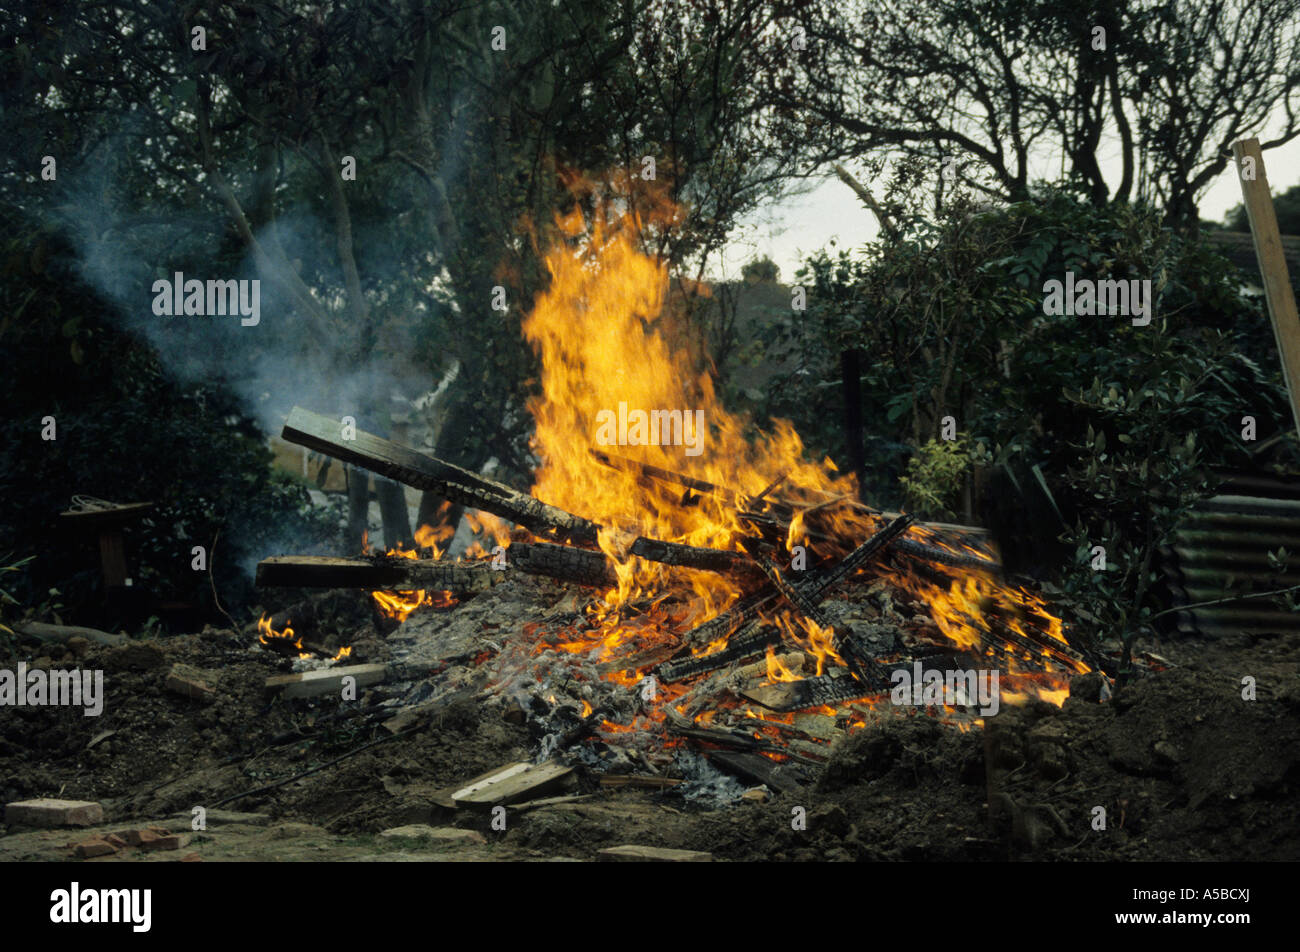 bonfire in garden polluting the air and sending out emmisions not helping with global warming Stock Photo